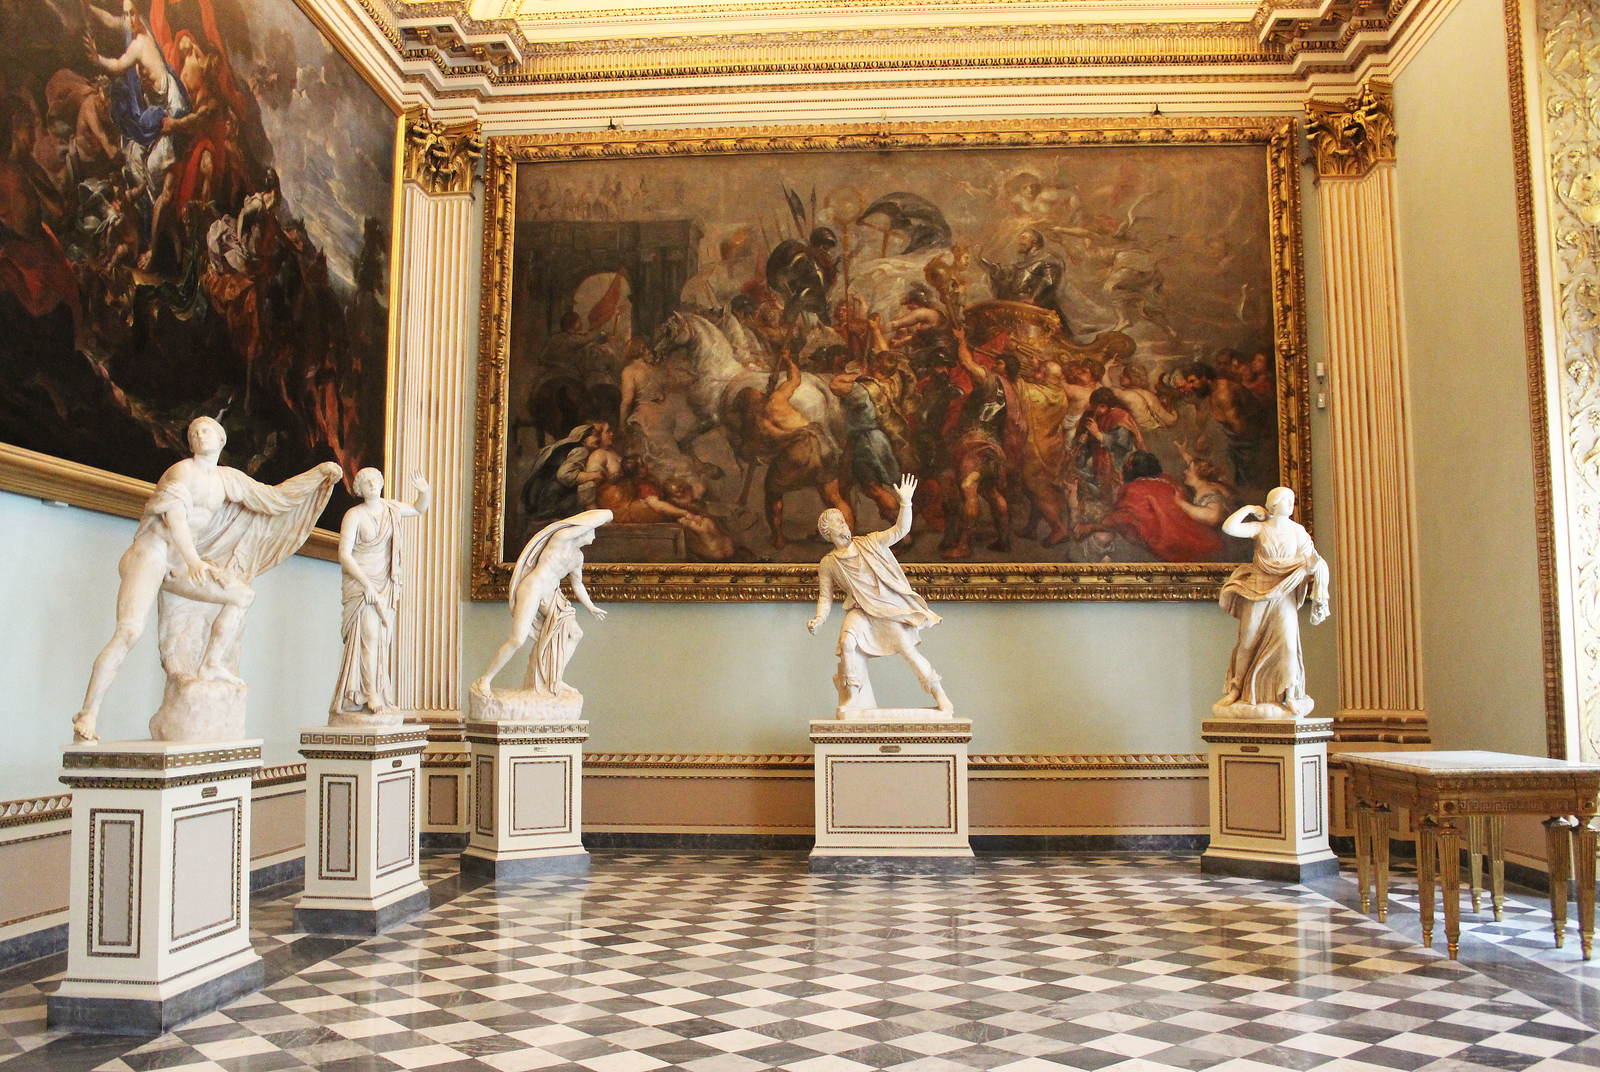 Famous Places to Visit in Italy: Rome and Florence Guide - Uffizi Gallery